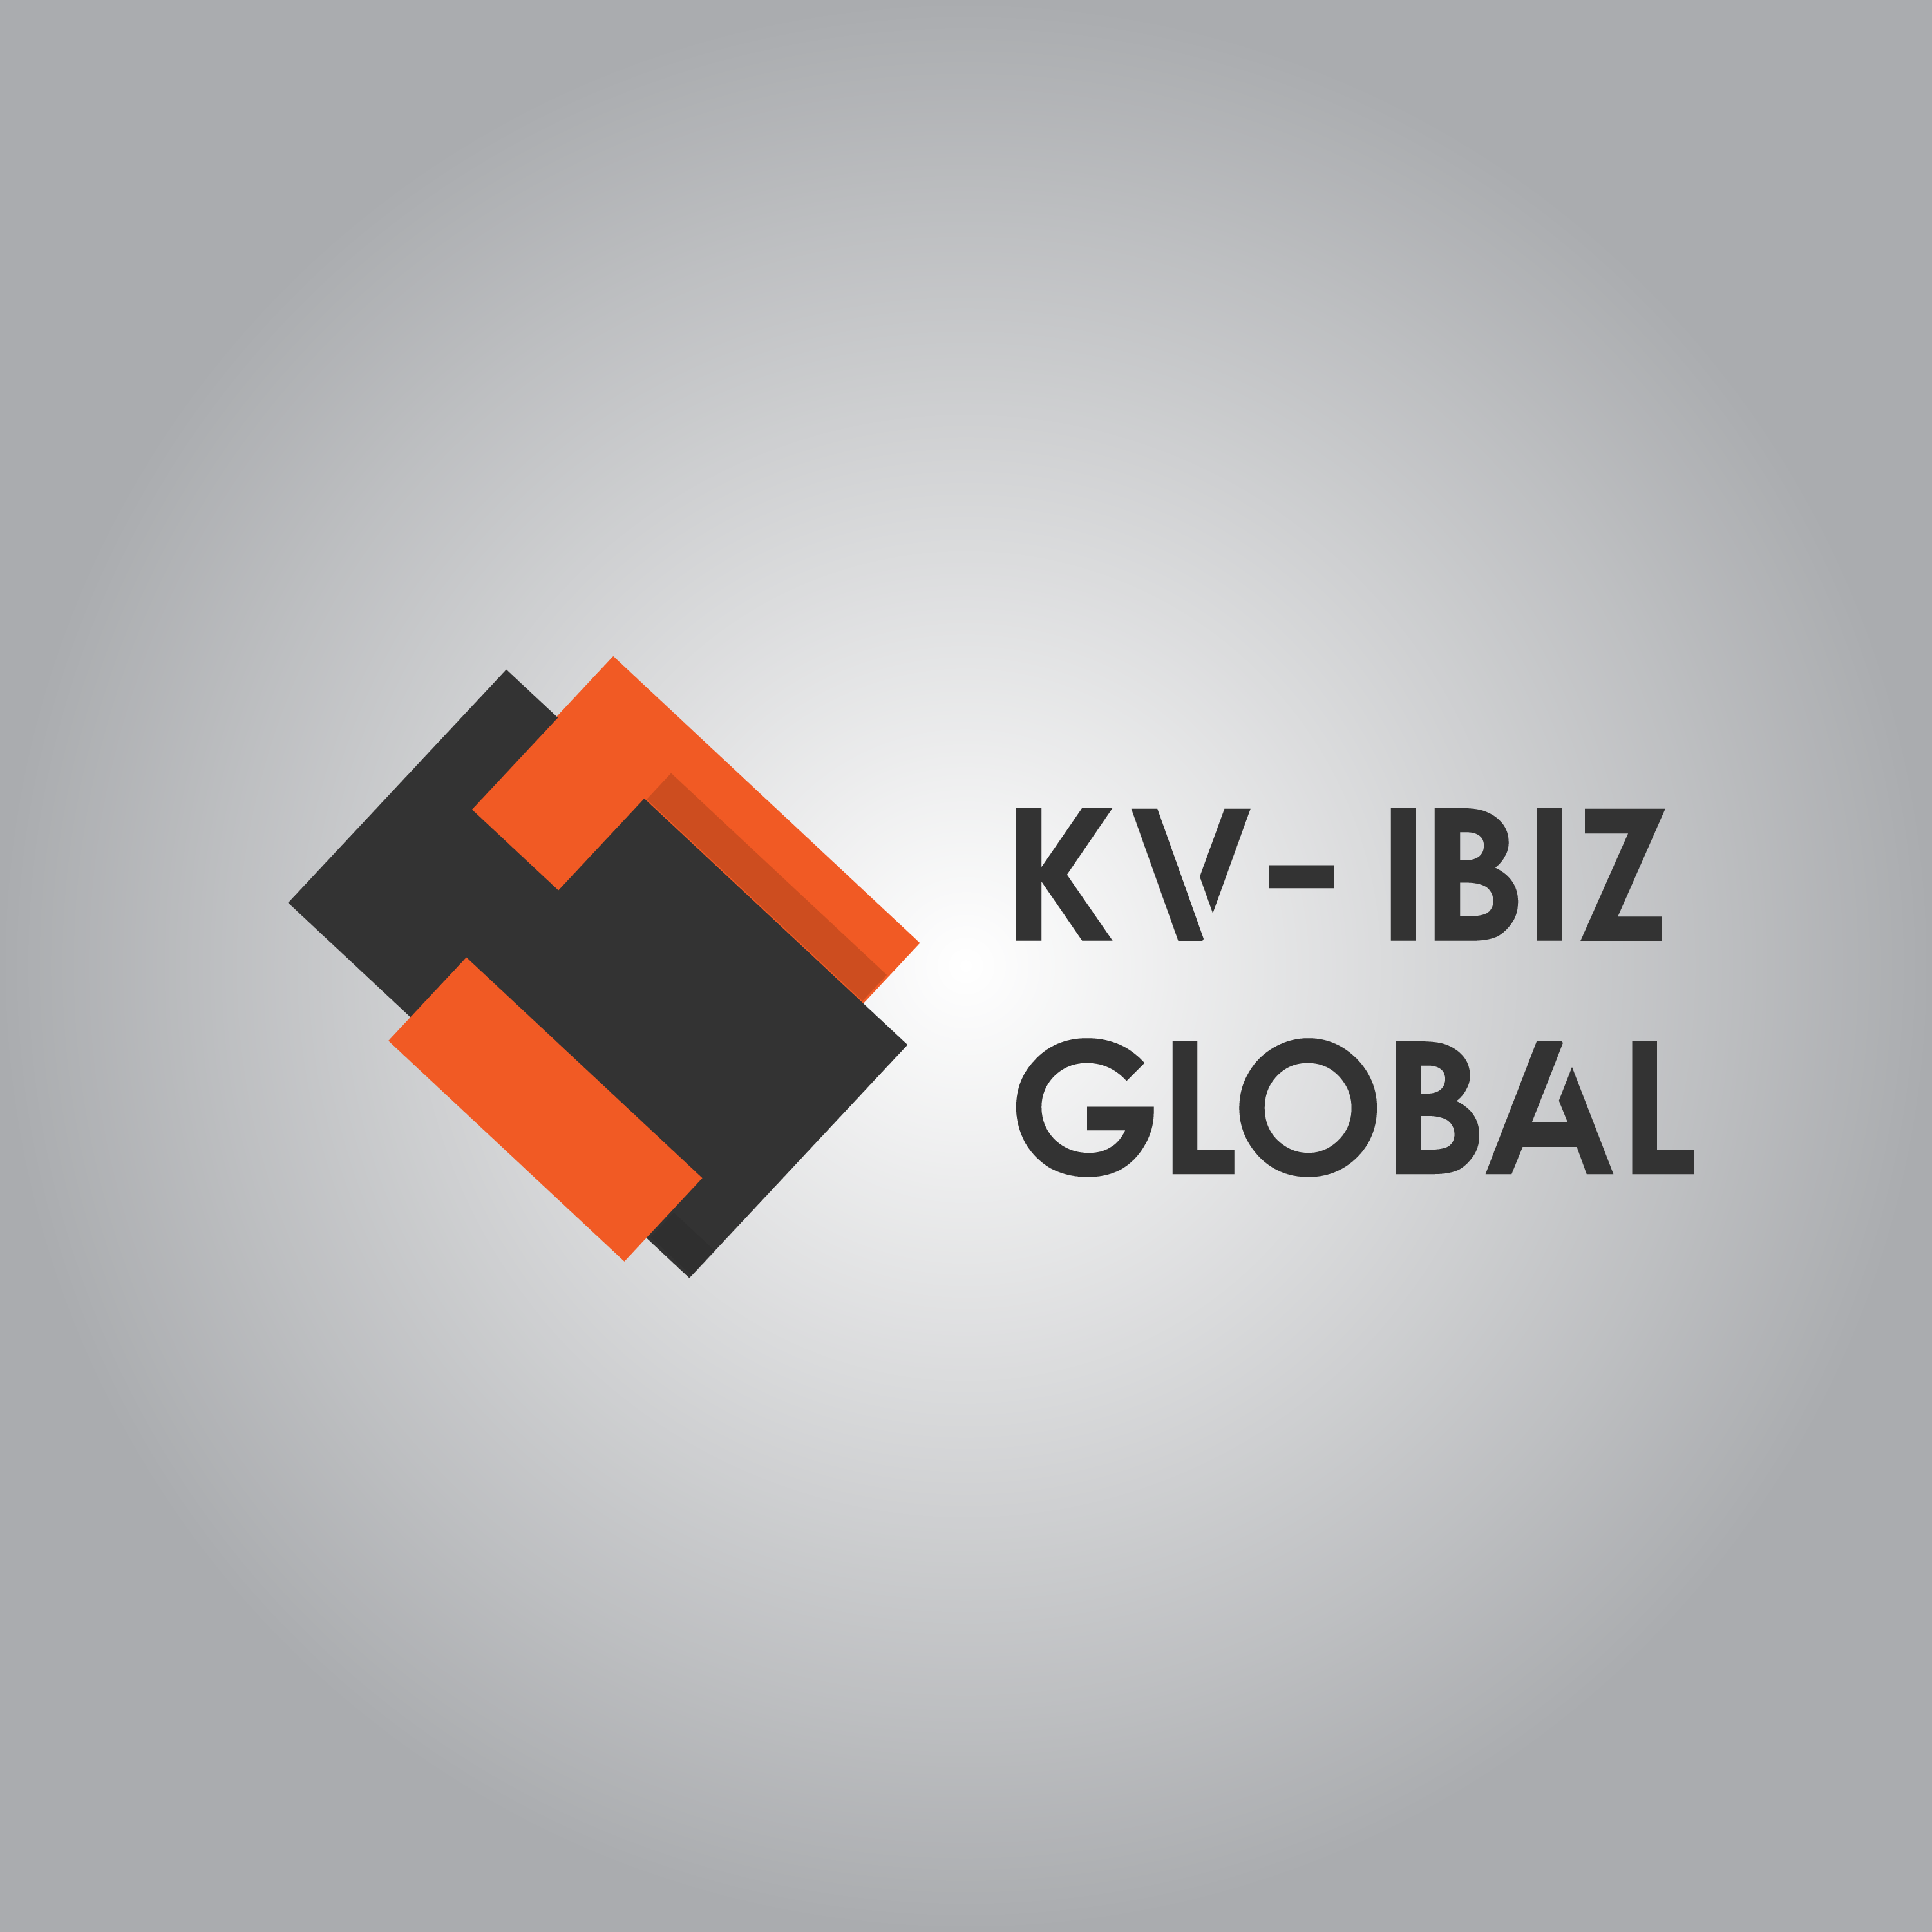 KV International Business & Consulting